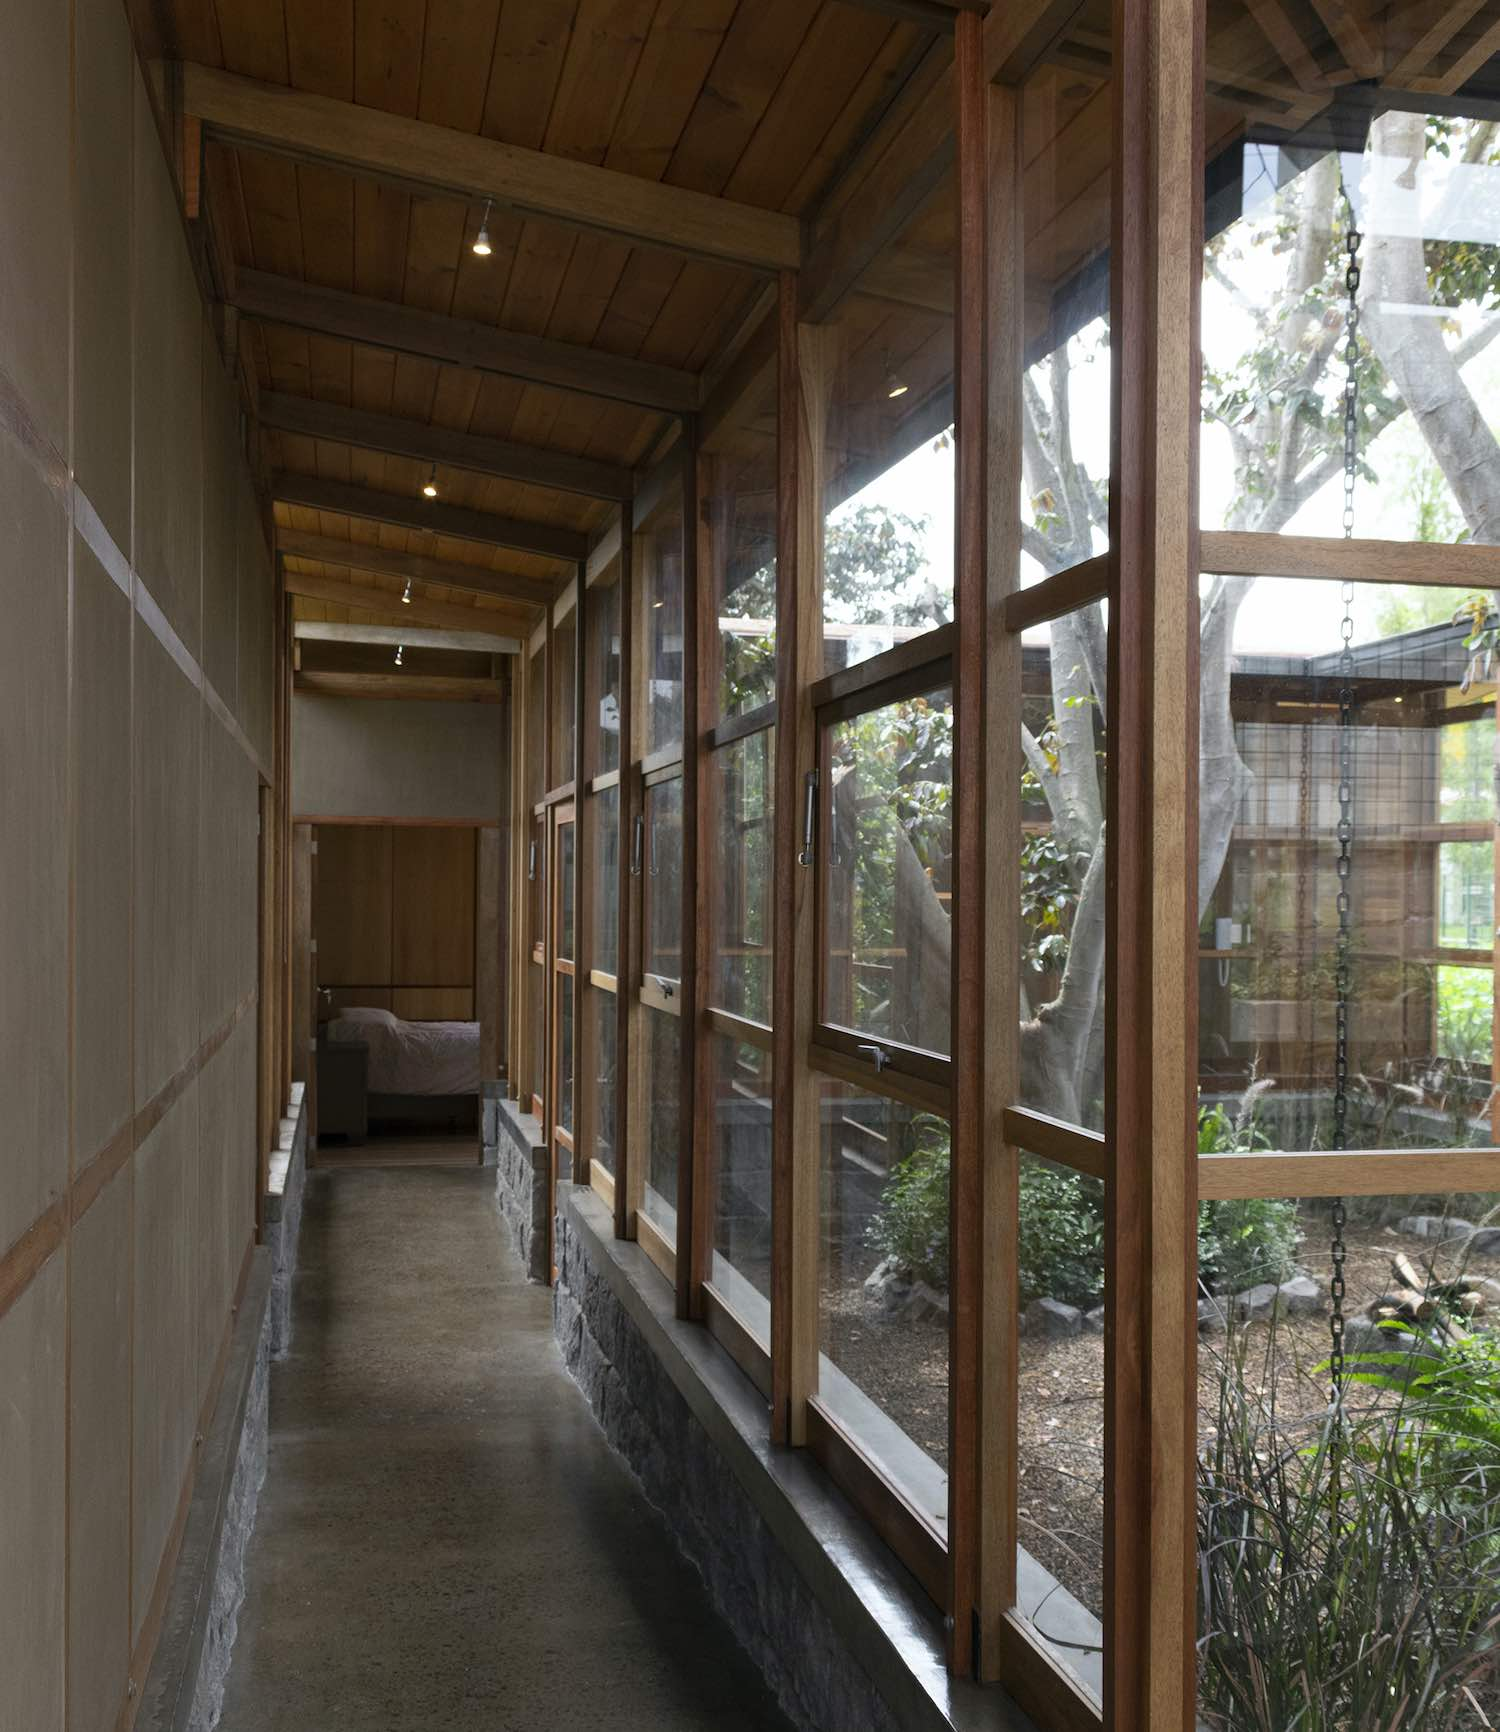 corridor with large wooden windows and patio view